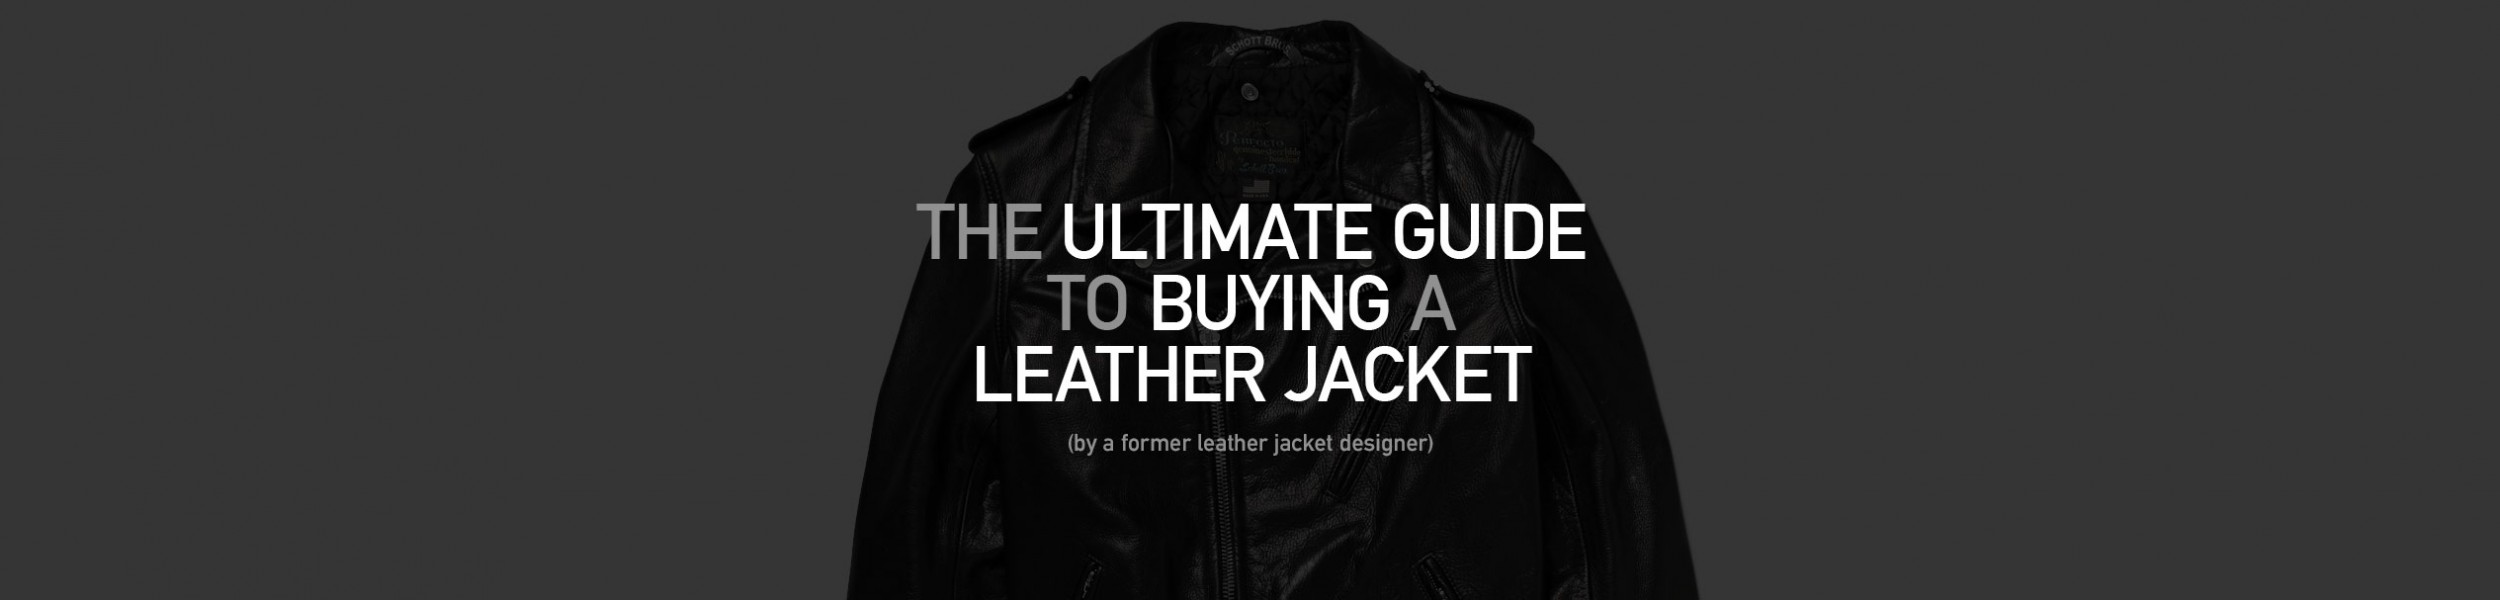 5caf815cea8 The Ultimate Guide to Buying a Leather Jacket (by a former leather jacket  designer)